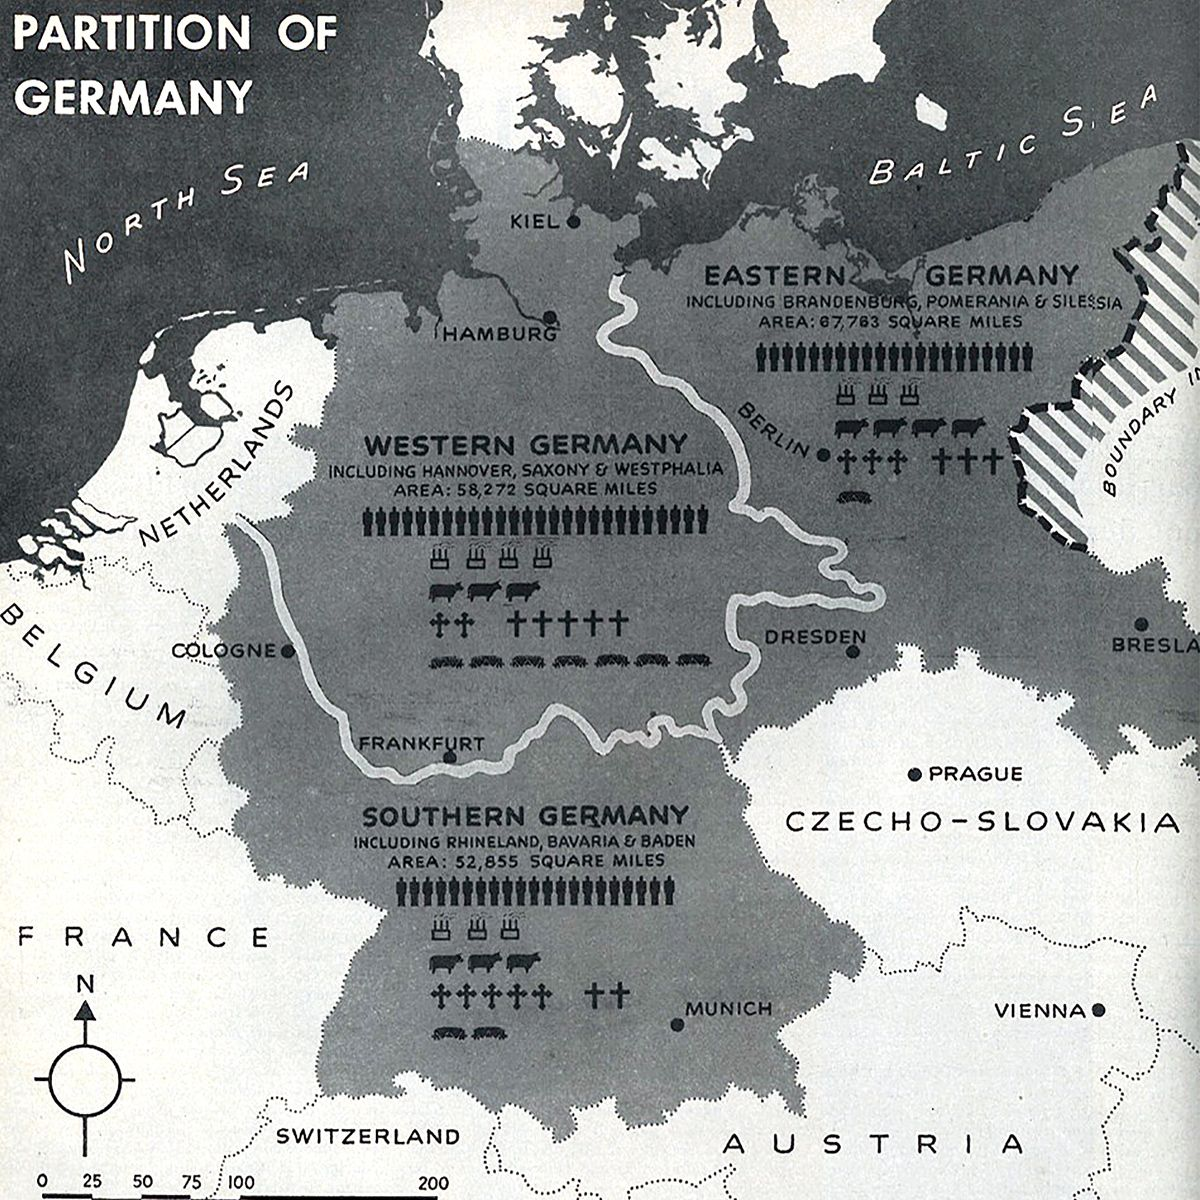 The Post War Partition Of Germany As Proposed By Summer Welles In